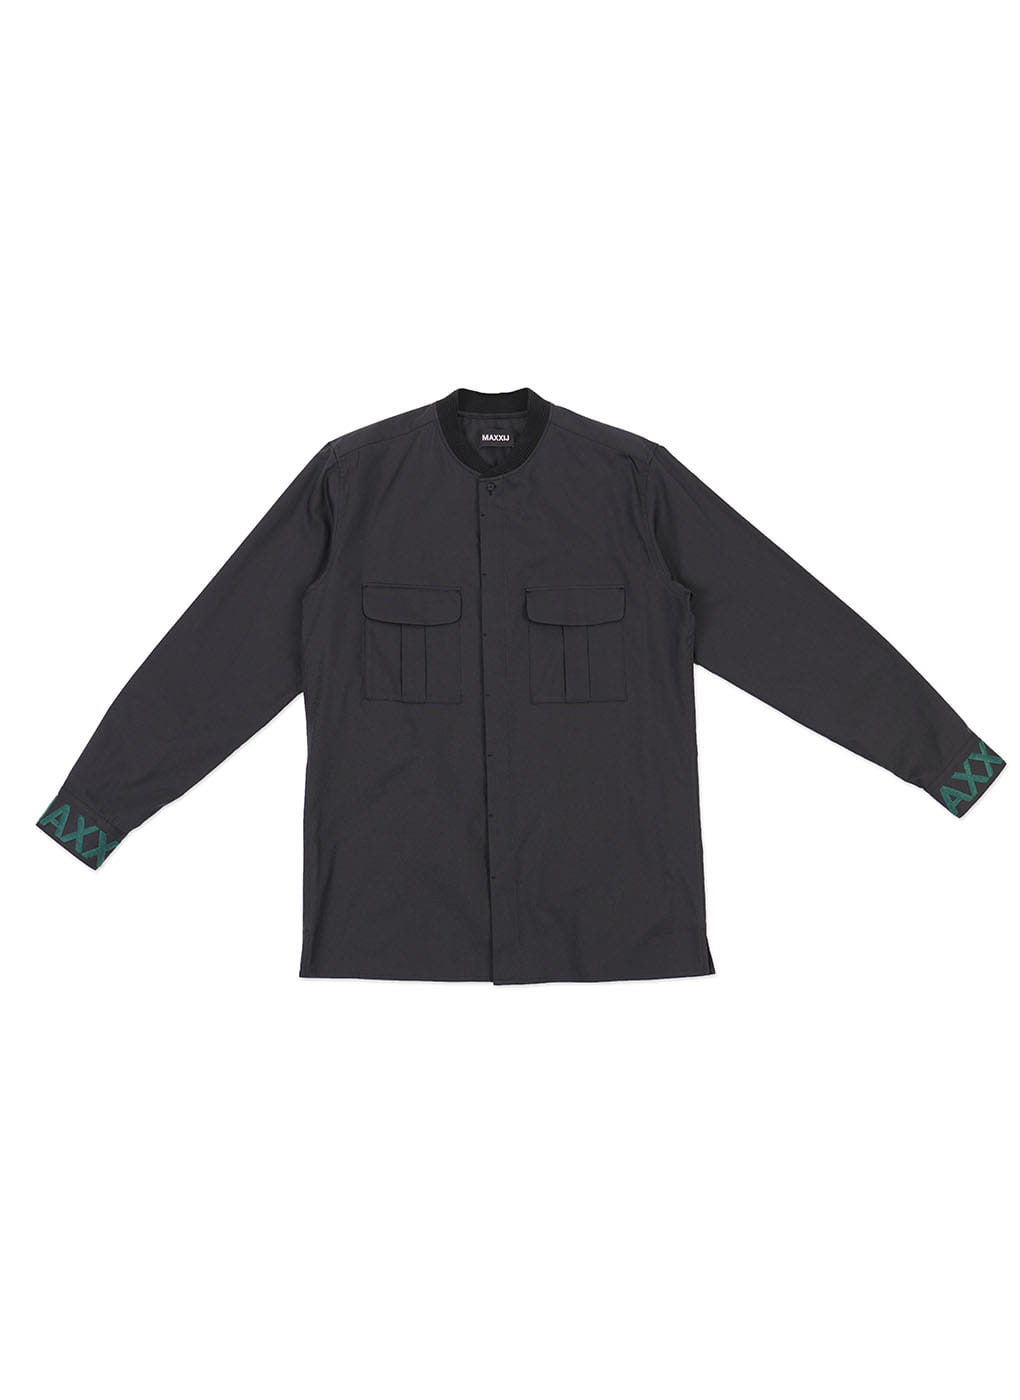 Dark Navy Military Bomber Neck Shirt With Cuff Embroidery